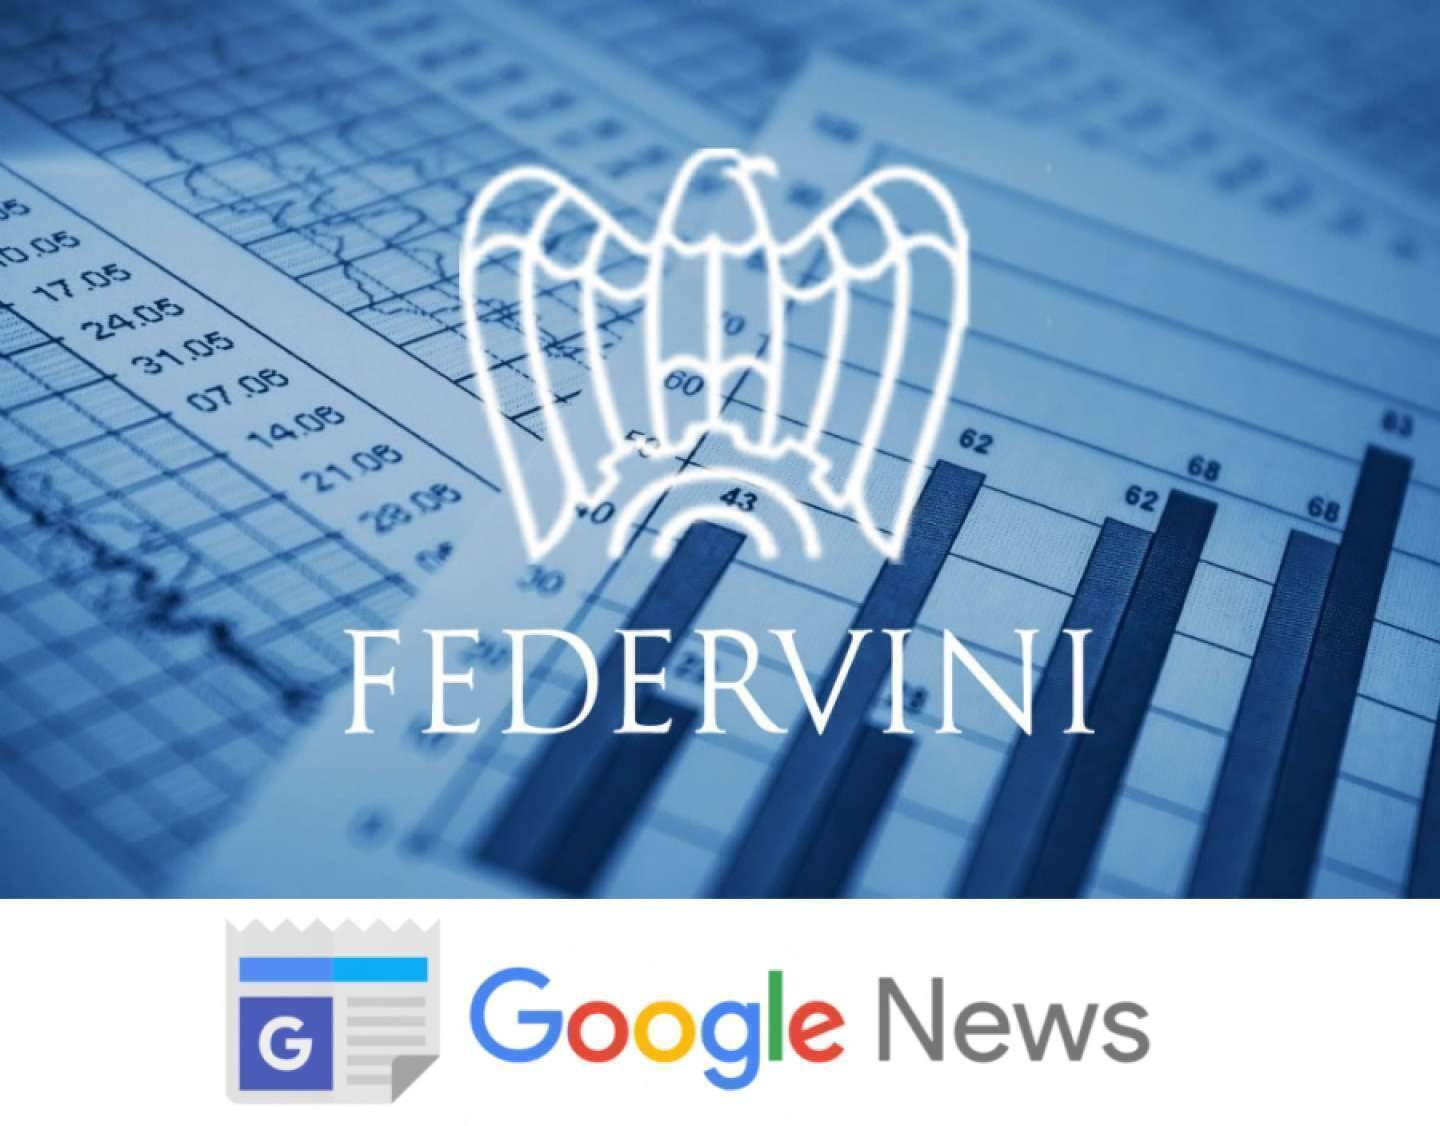 Federvini su Google News